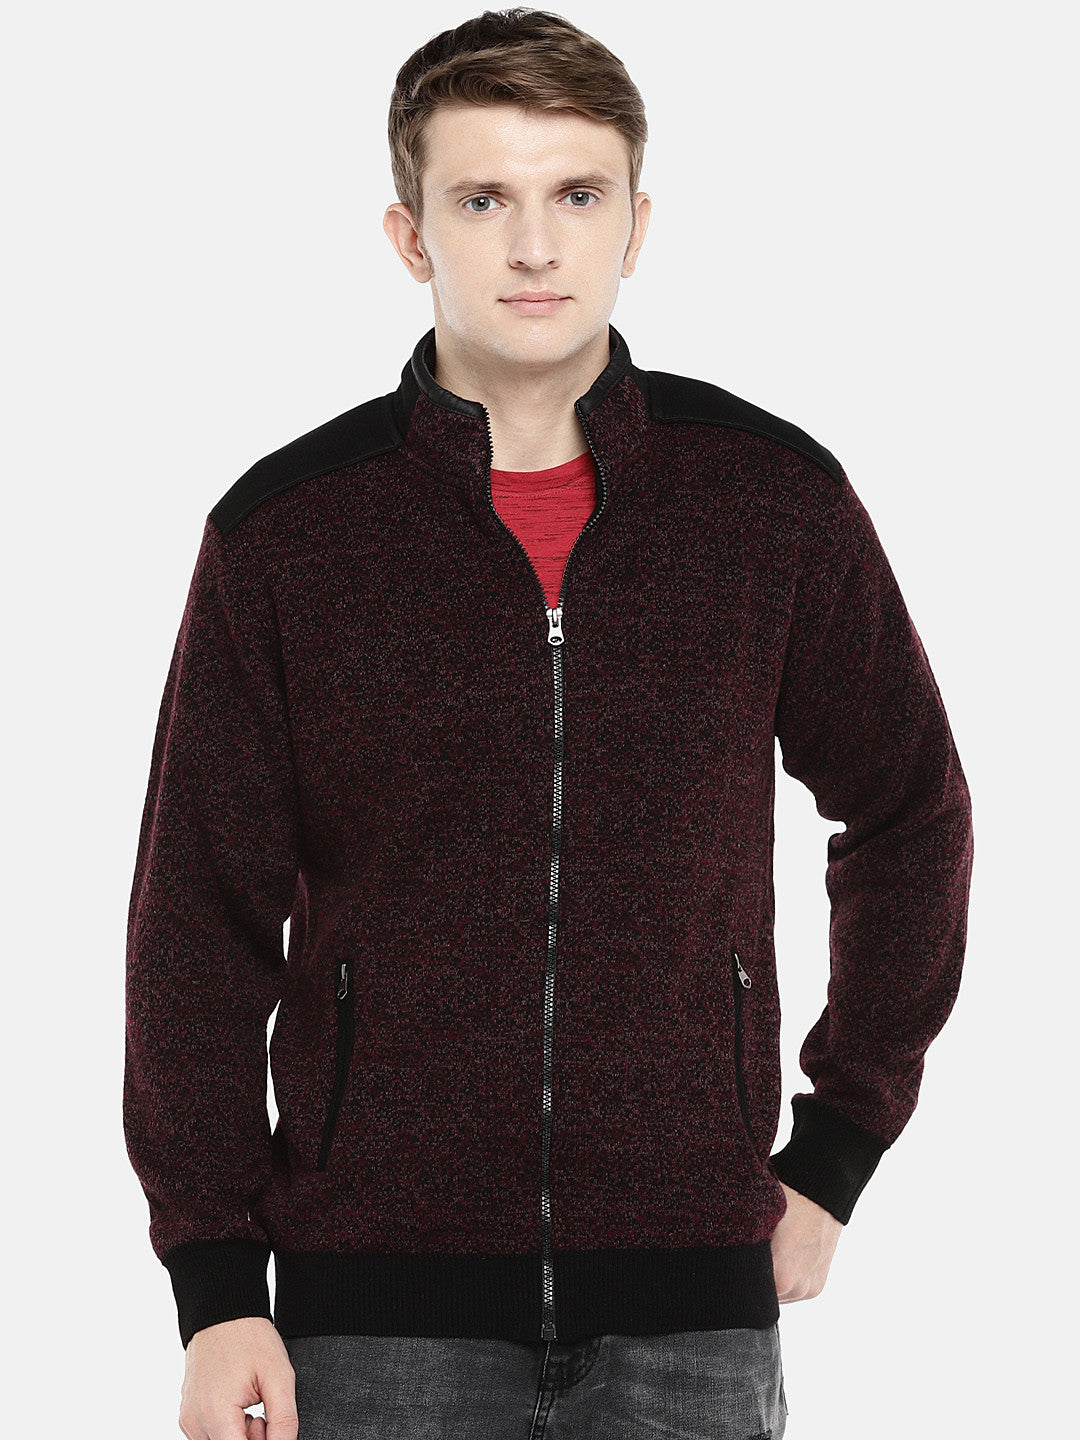 Maroon Self Design Tailored Jacket-1